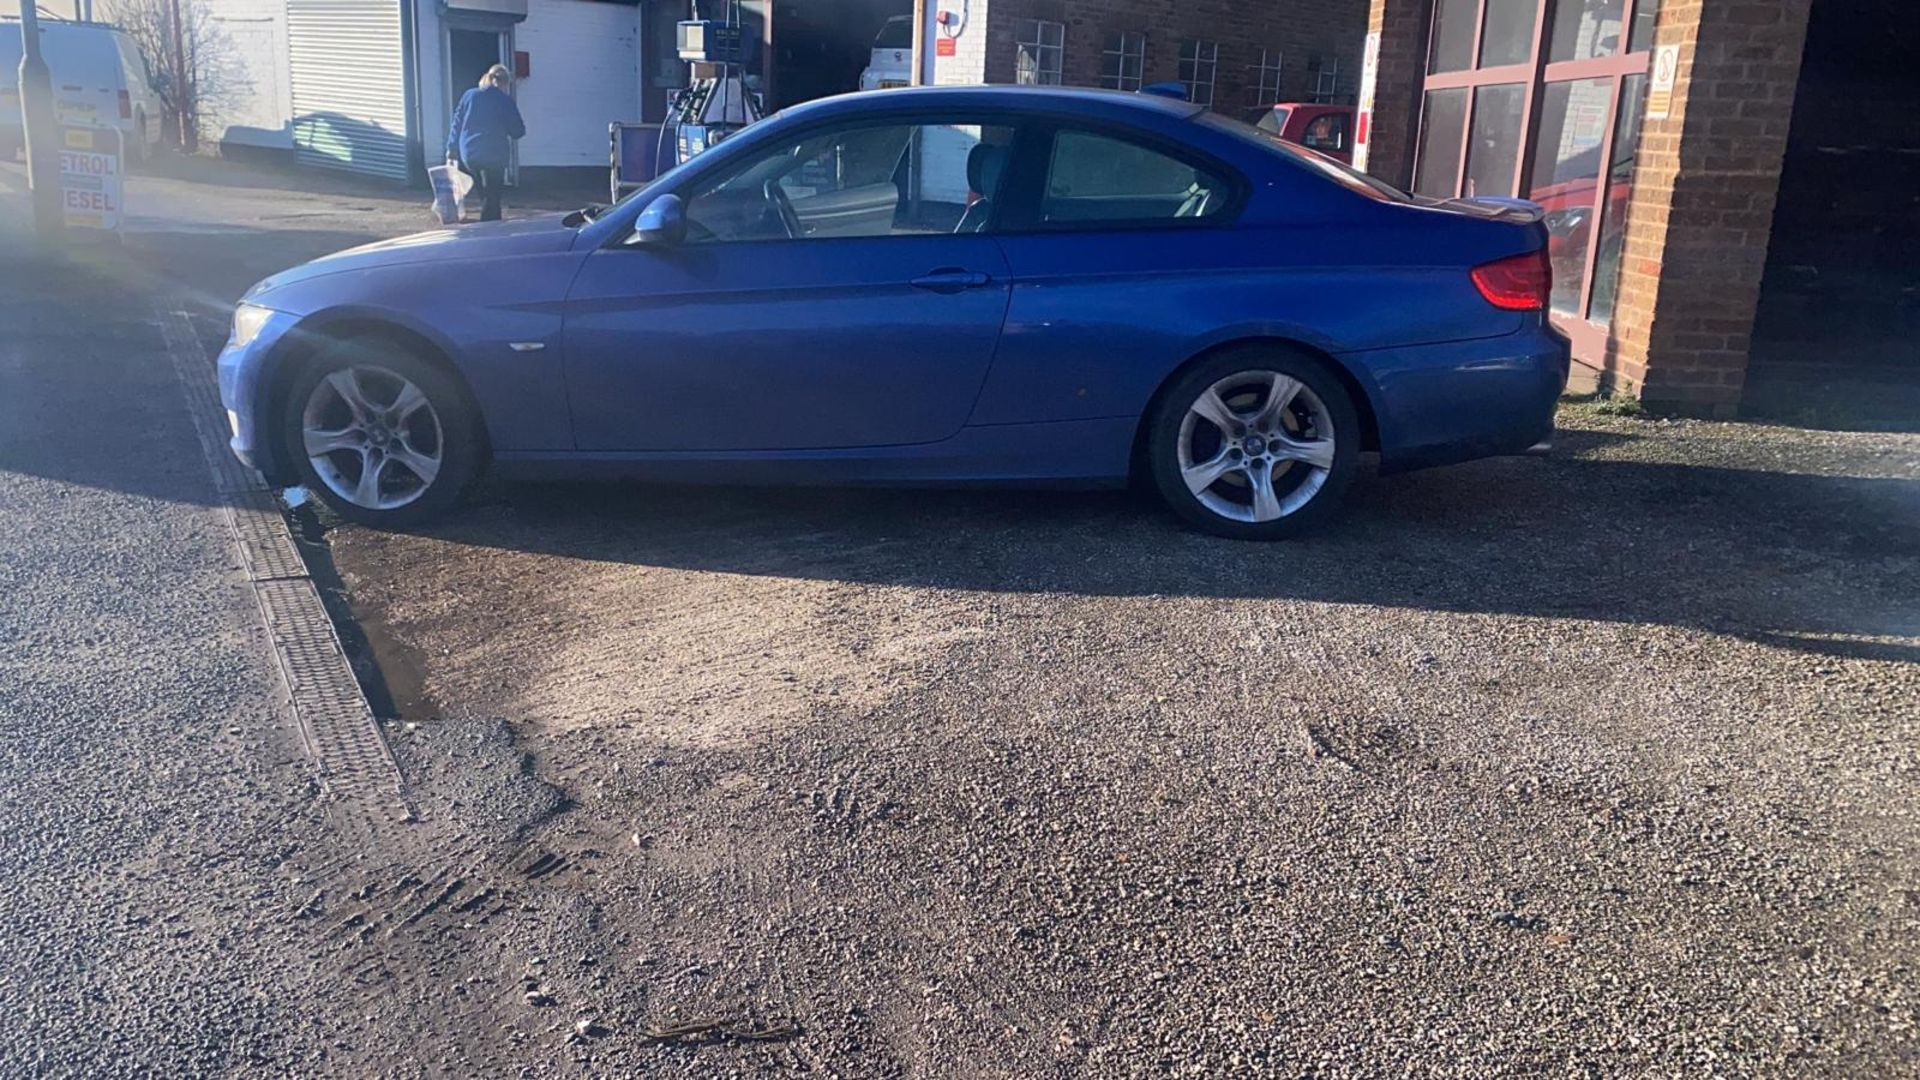 2010/60 REG BMW 320D SE AUTOMATIC 2.0 DIESEL BLUE COUPE 180 BHP *NO VAT* - Image 5 of 10